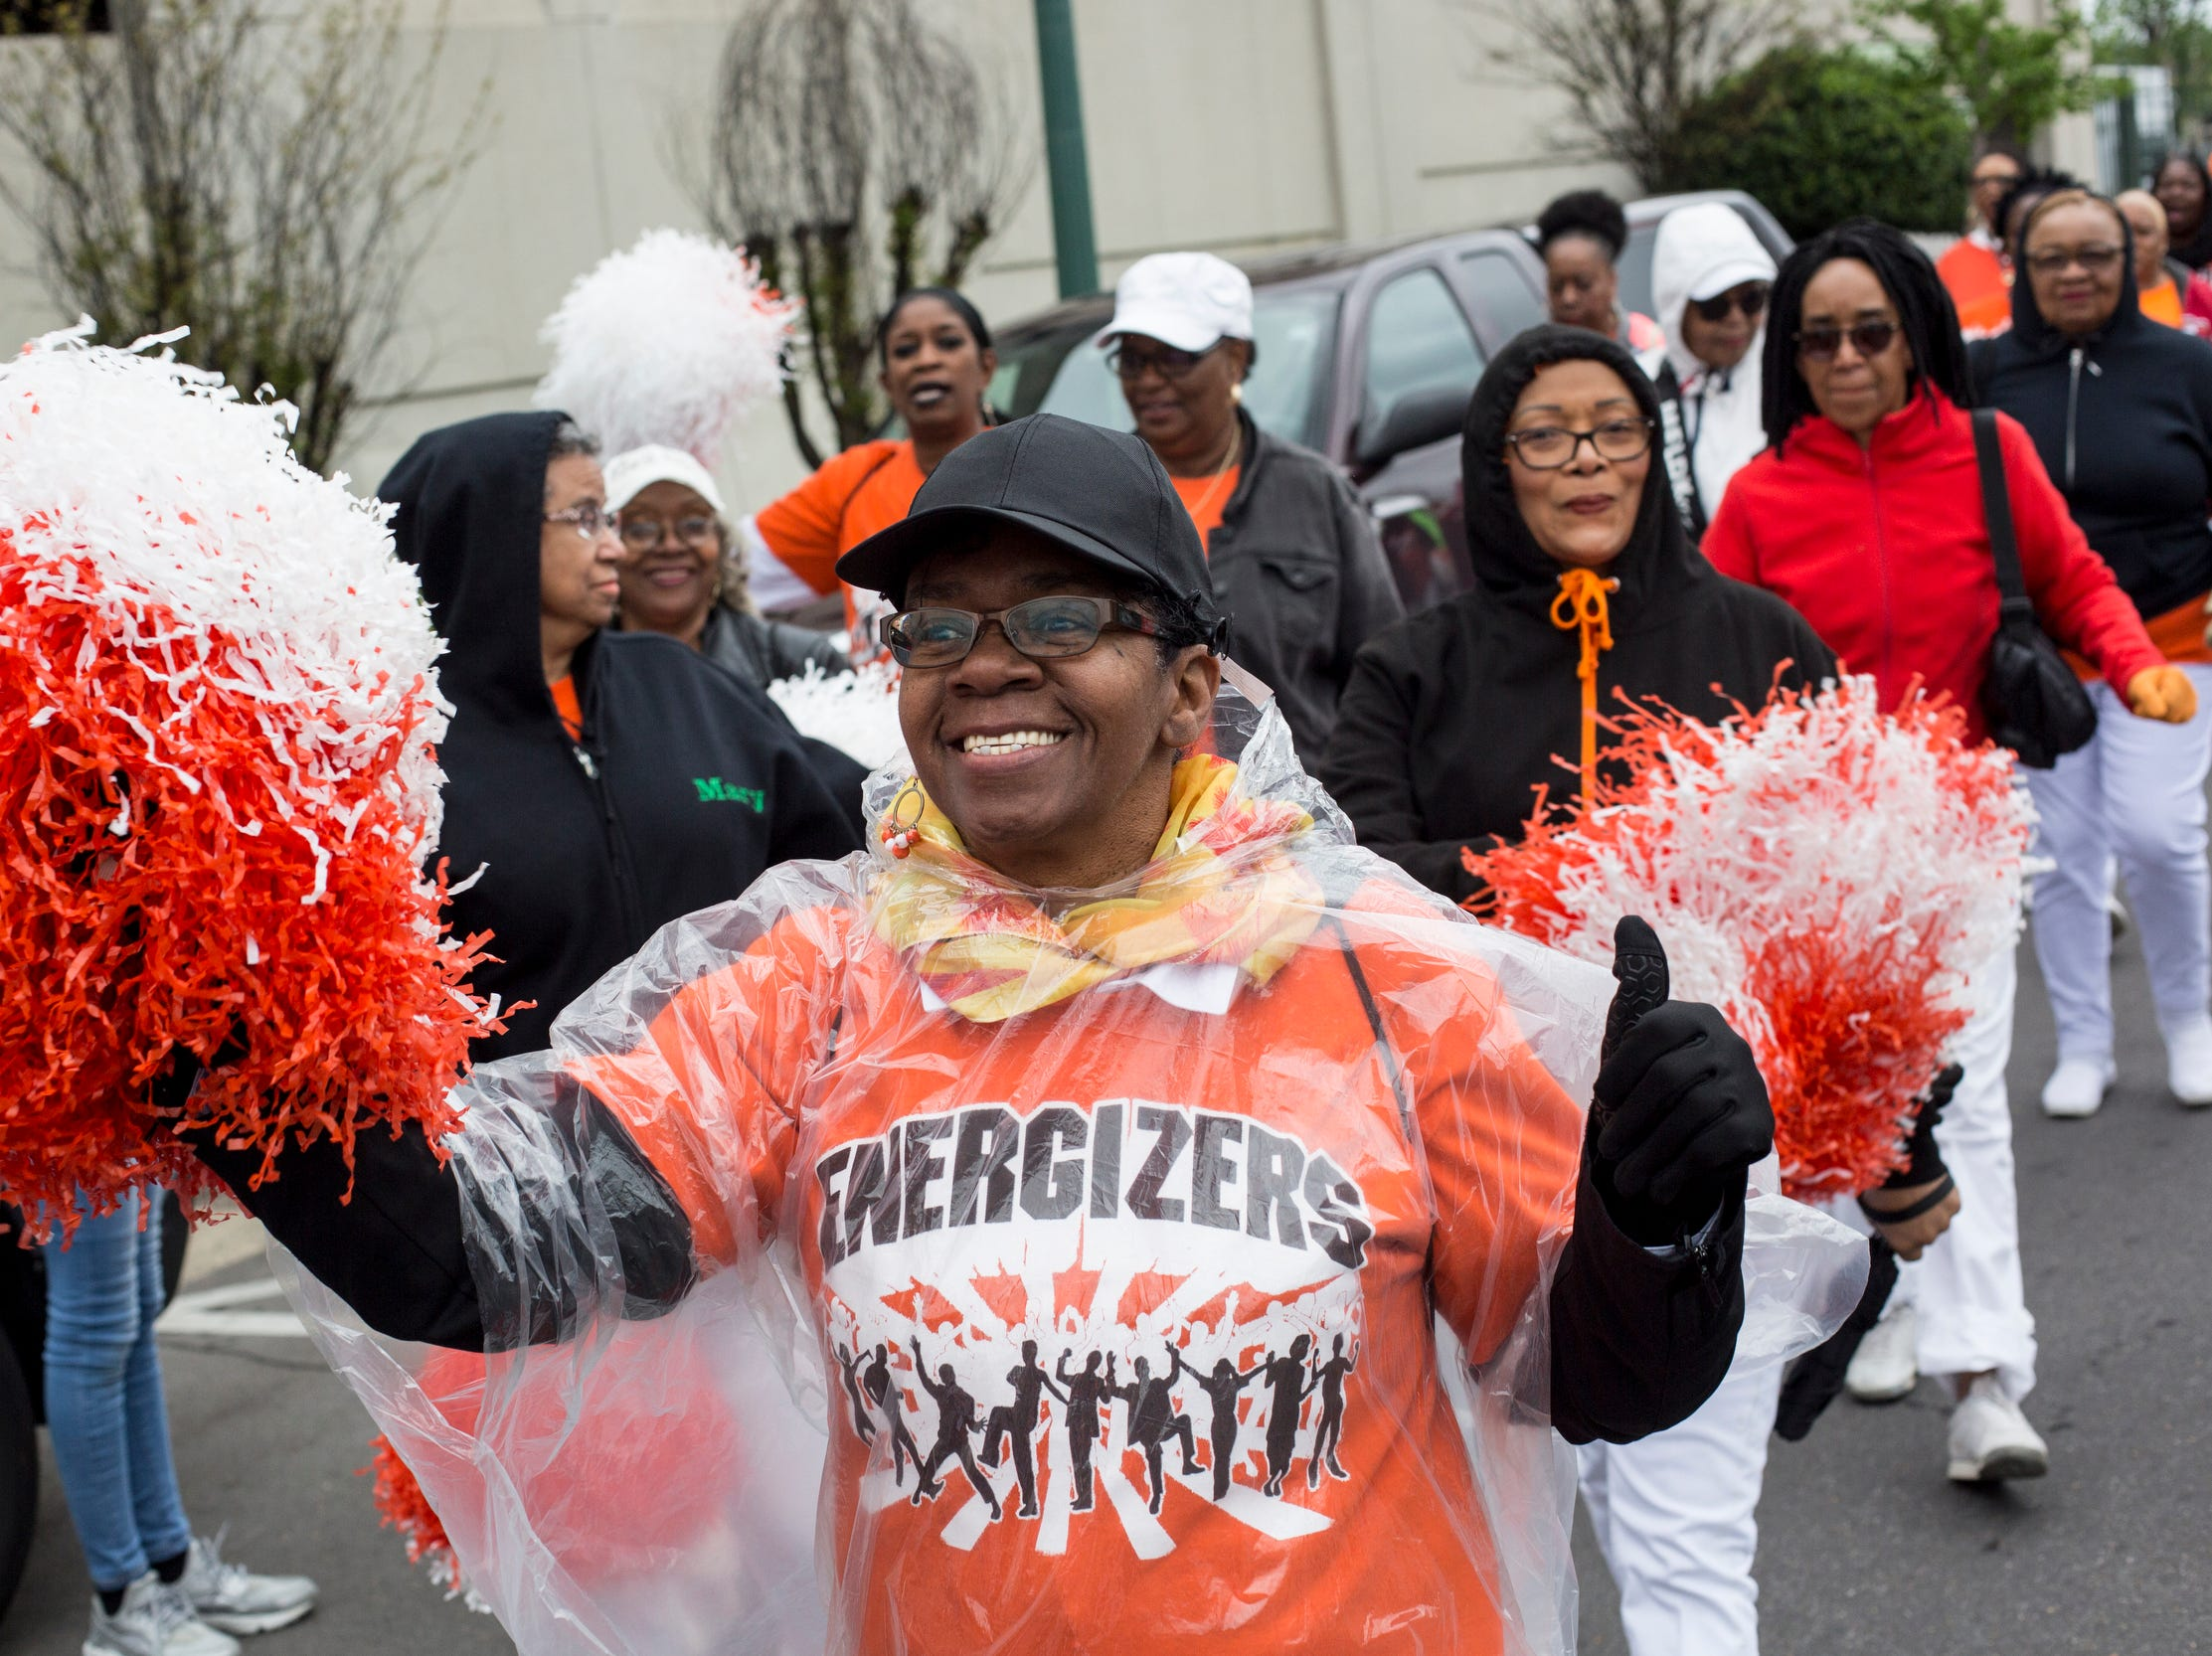 The Africa in April International Diversity Parade heads down Second Street on on Friday, April 19, 2019. The 33rd annual Africa in April Cultural Awareness Festival runs through April 21 at Robert Church Park.